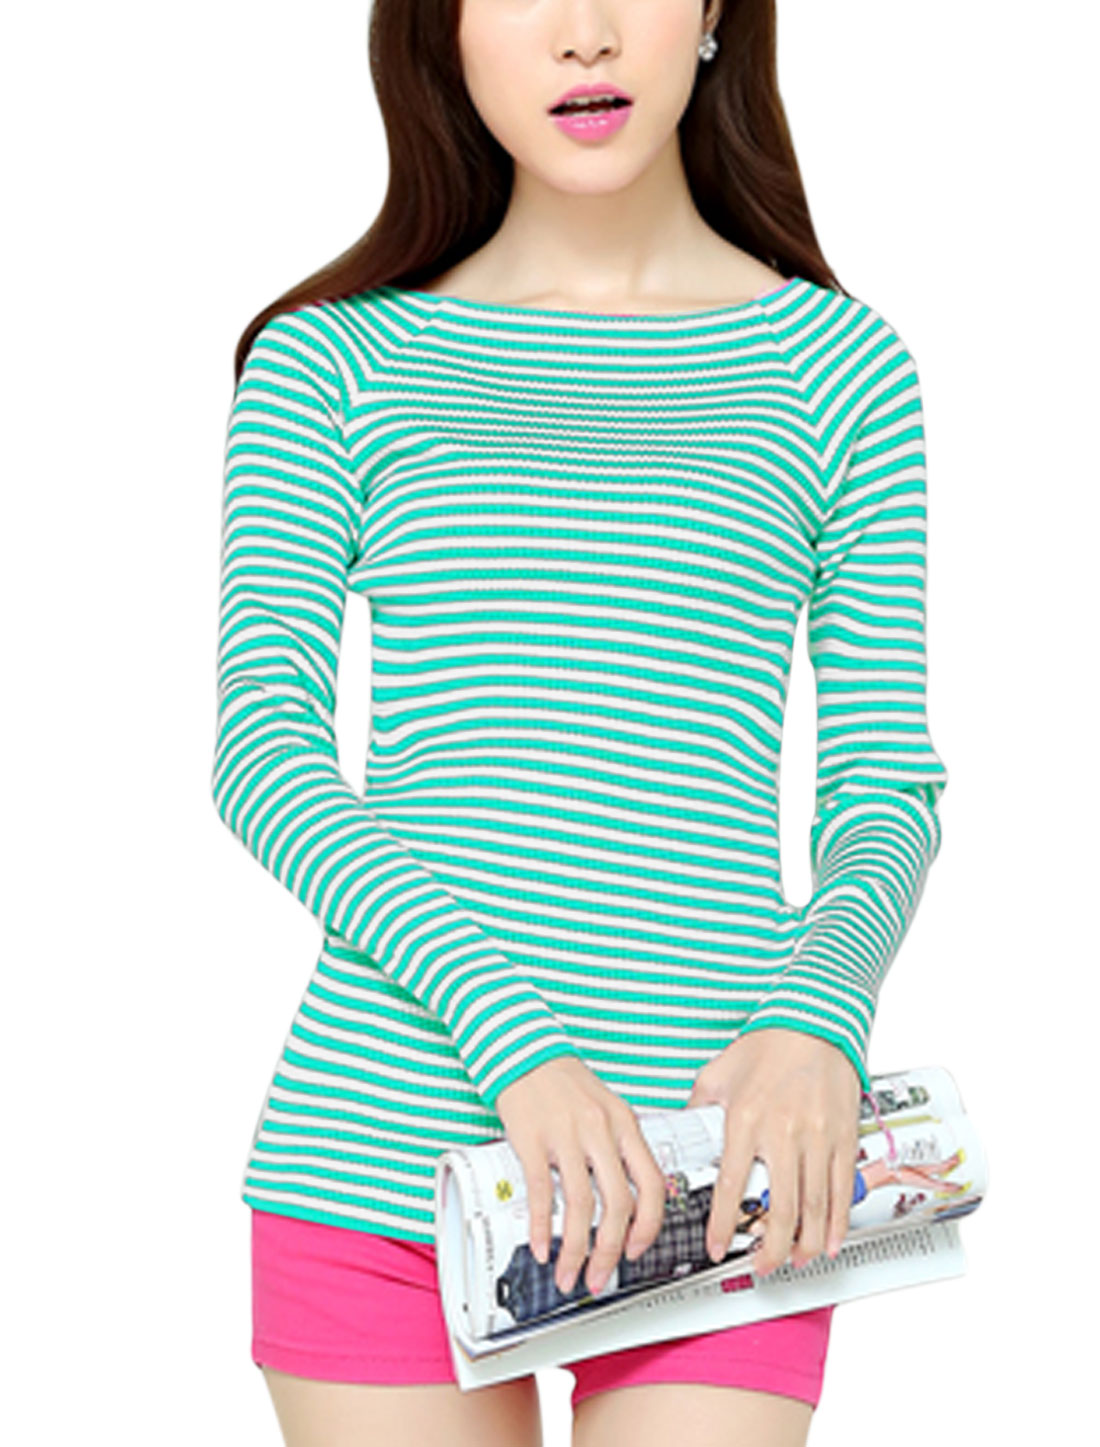 Ladies Stripes Raglan Sleeves Pullover Aqua White Knit Shirt XS